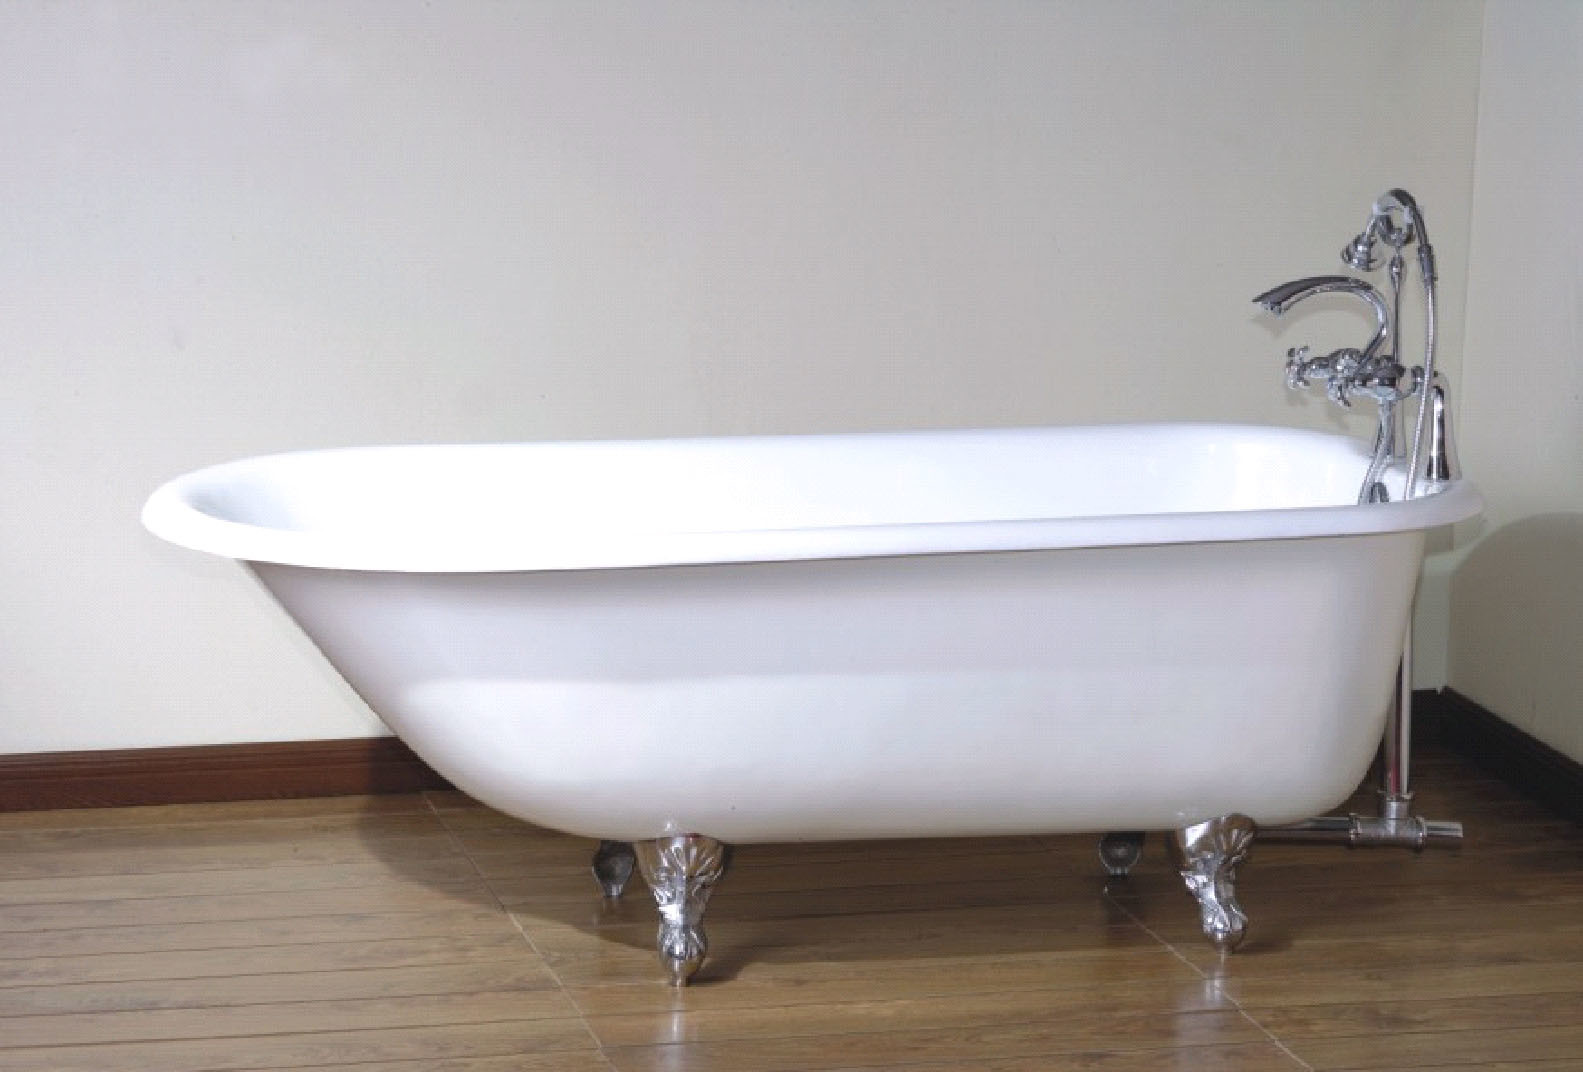 Http Czyuntao En Made In China Com Product Pepjqwrdgivm China Clawfoot Bathtub Yt 81 Html